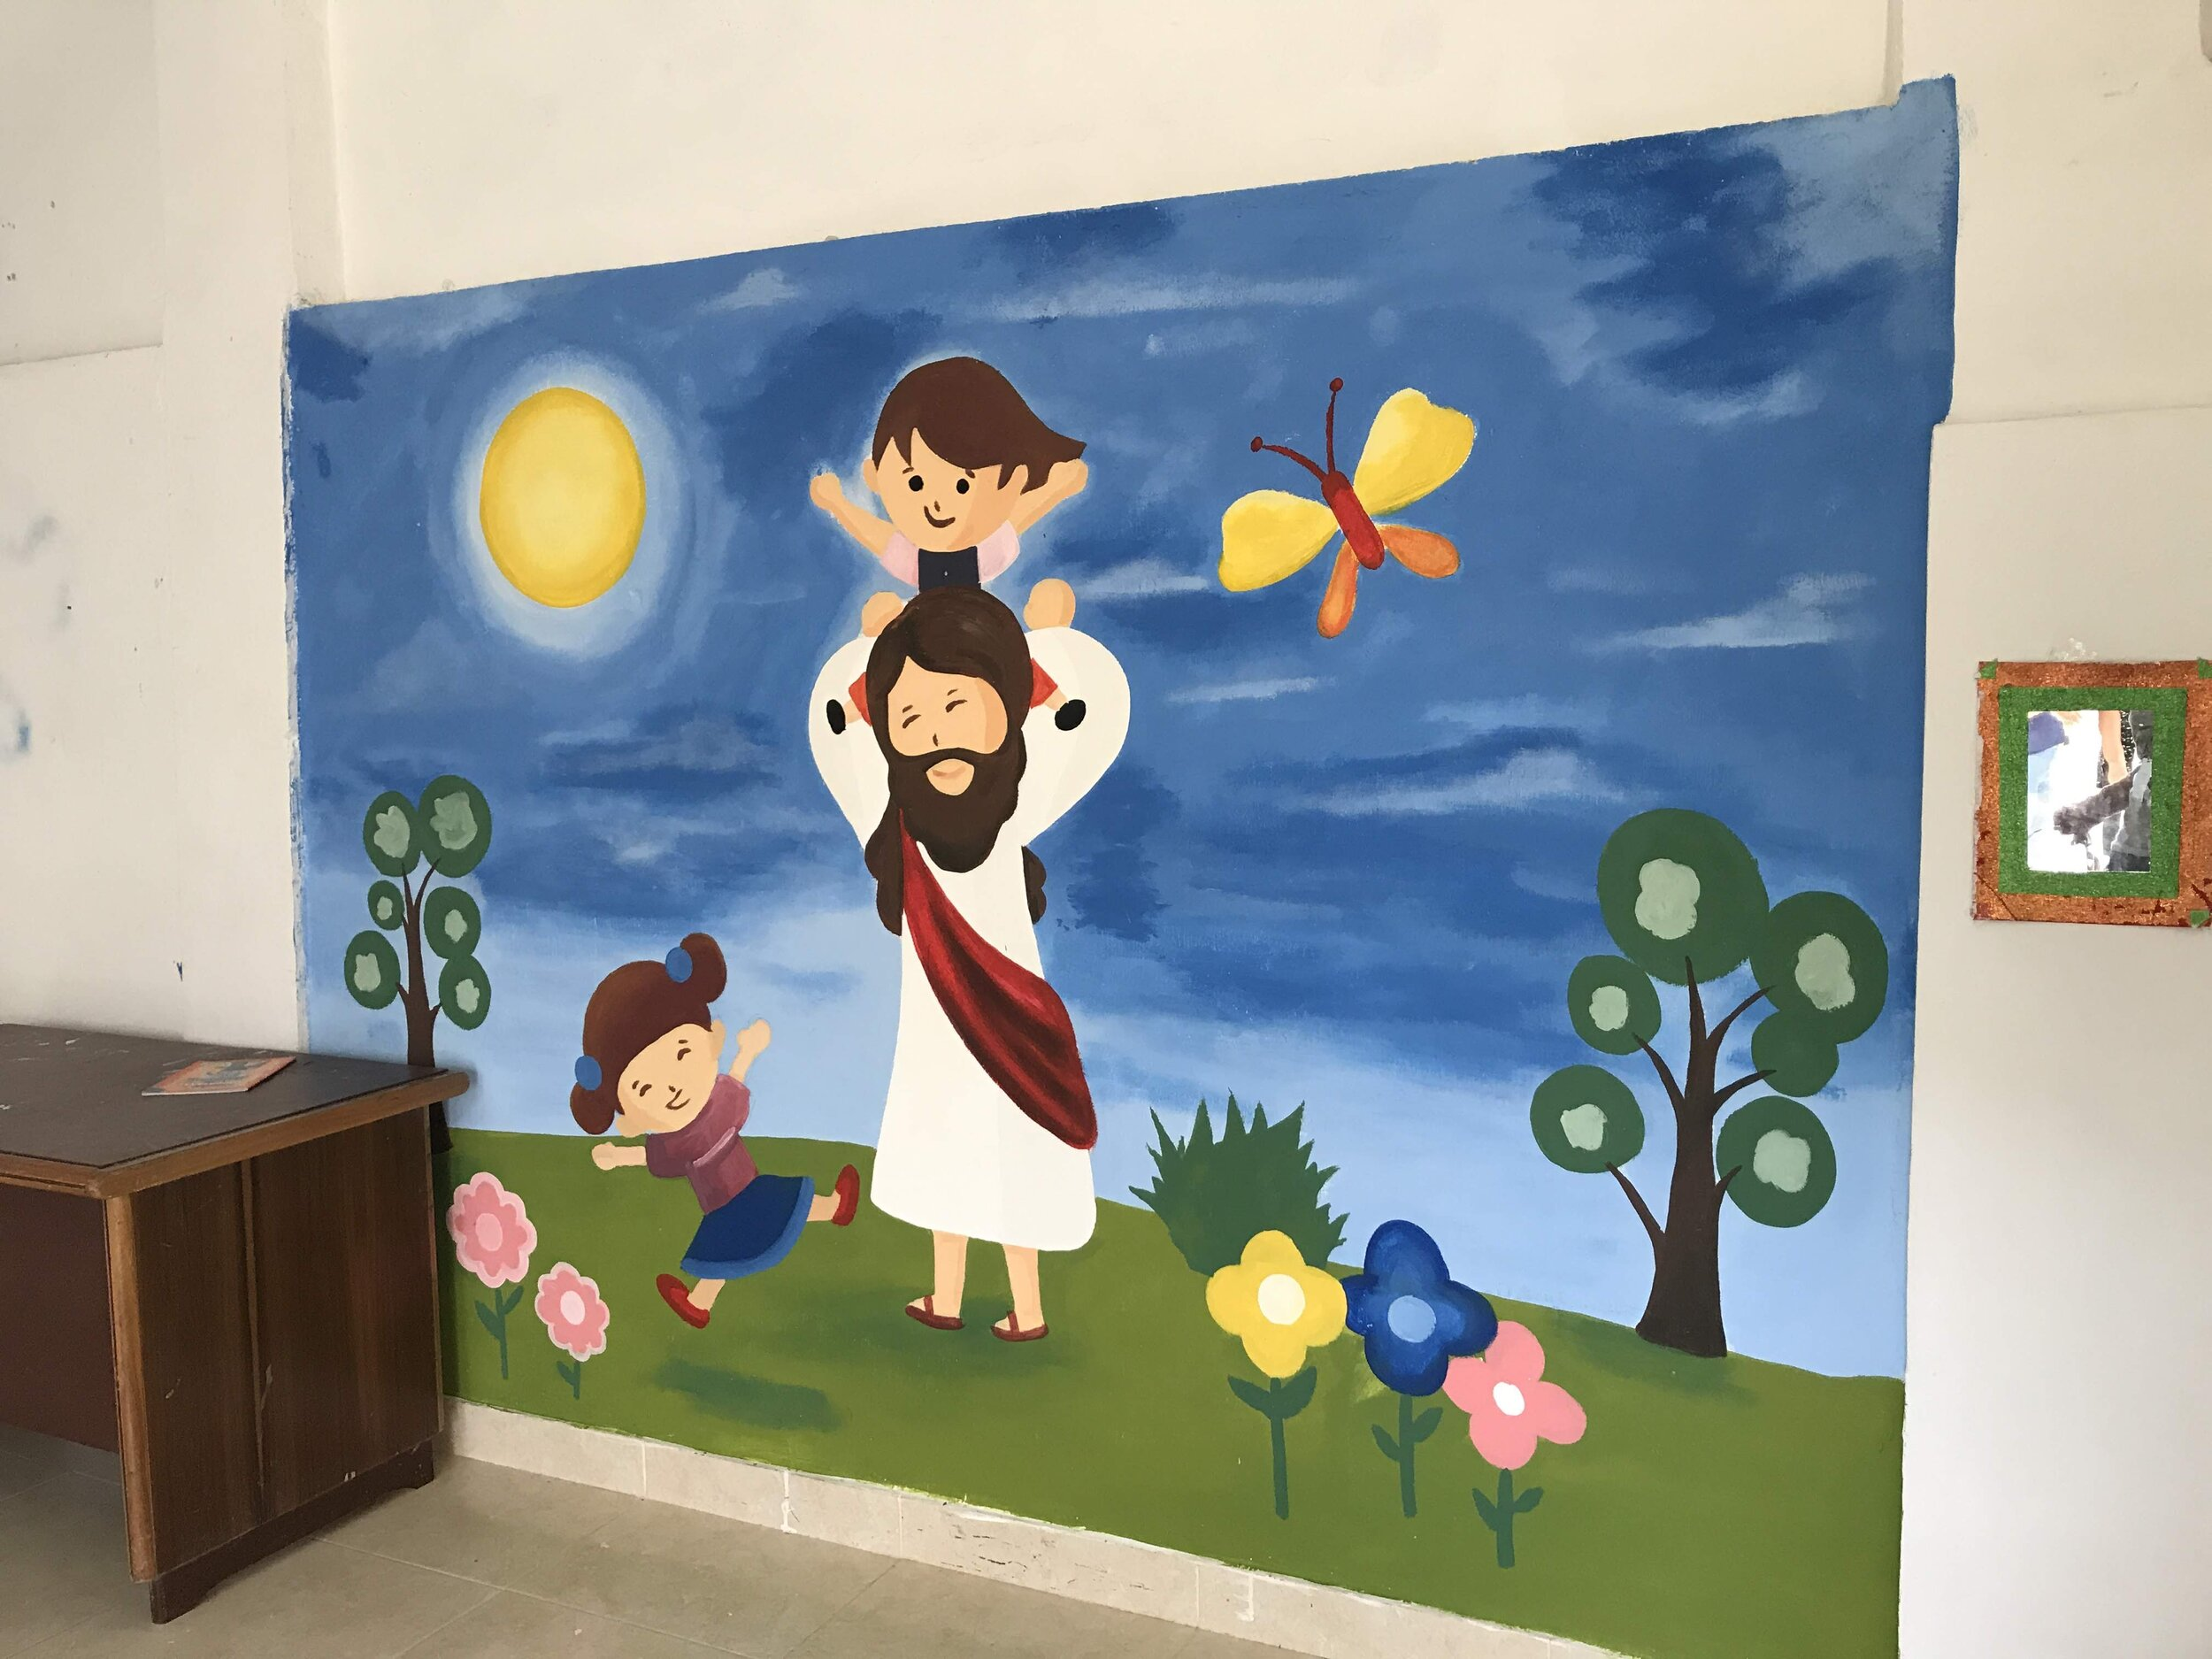 Mural of Jesus and children at Compassion center in Colombia